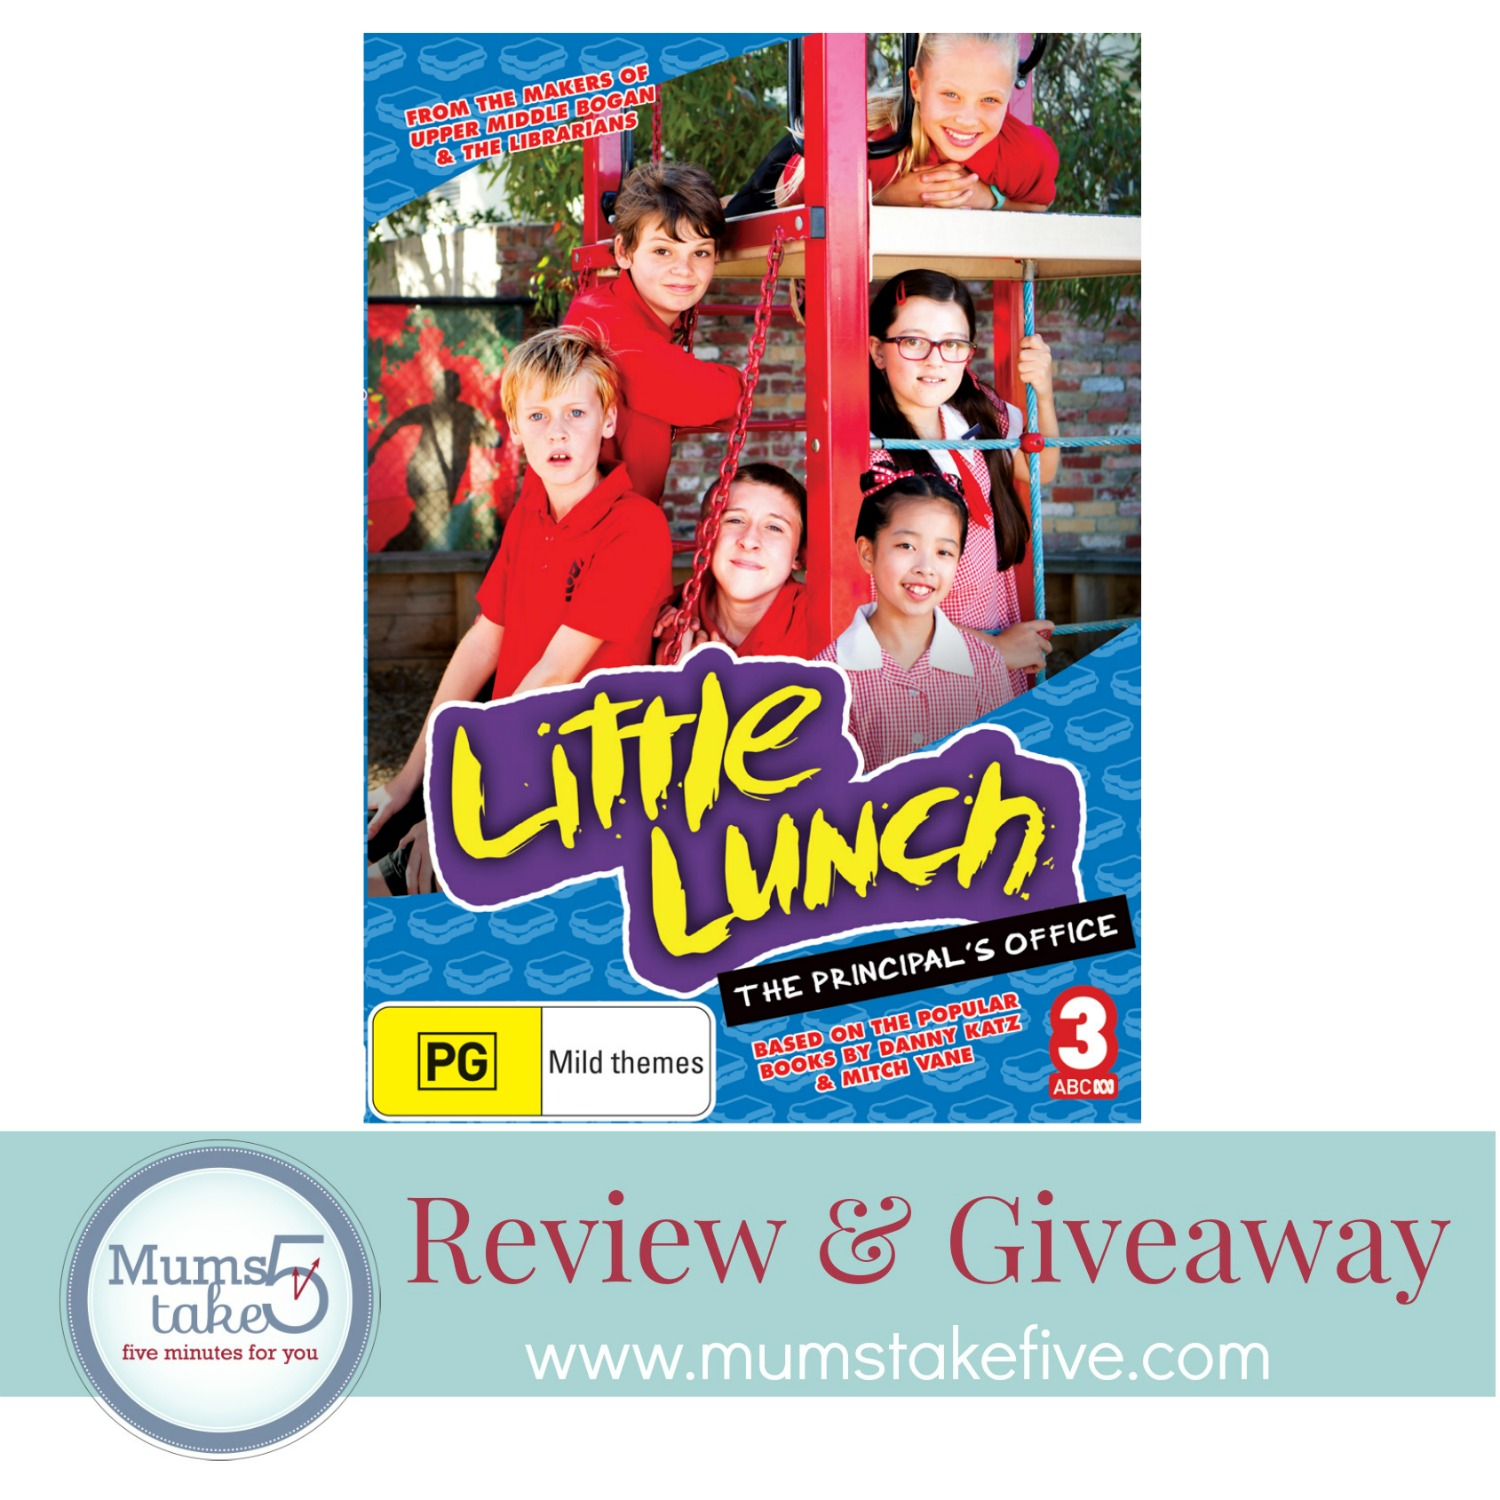 little lunch Review DVD giveaway